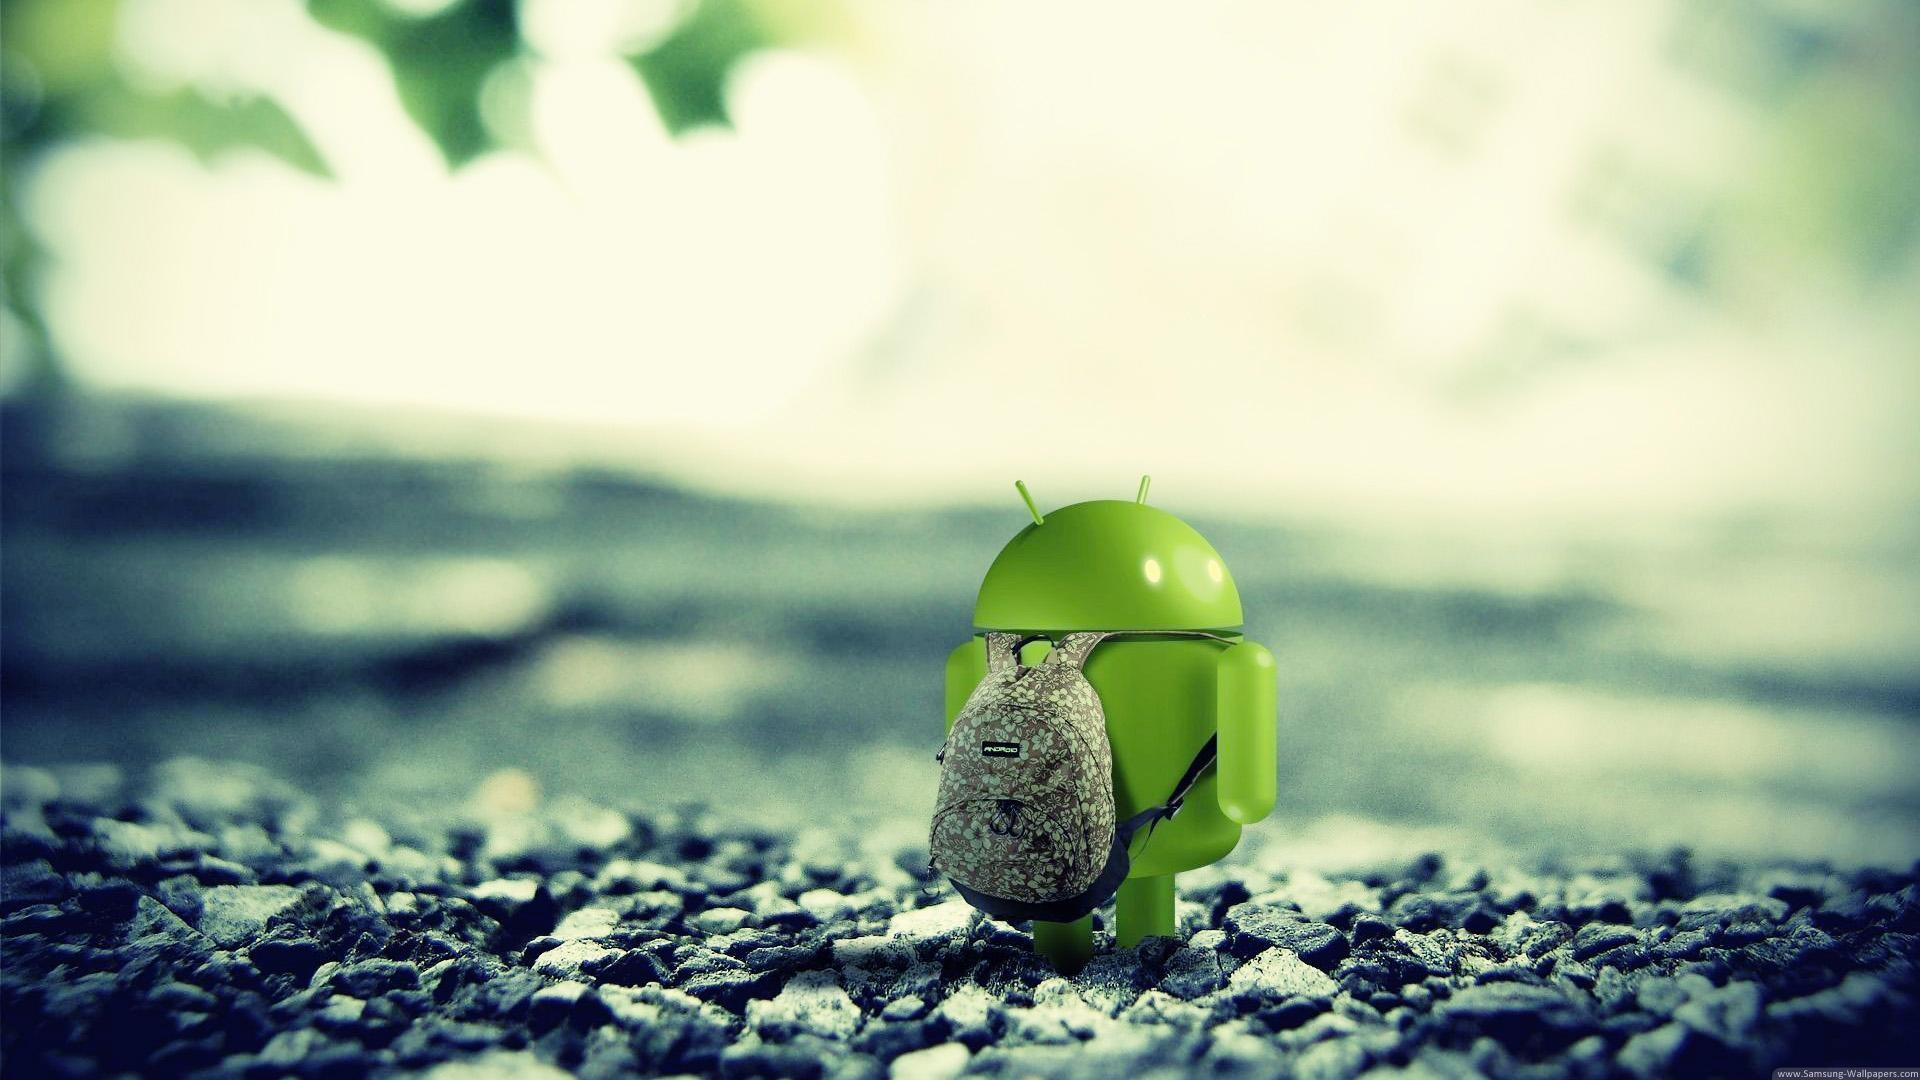 7. wallpapers-for-lock-screen7-600×338